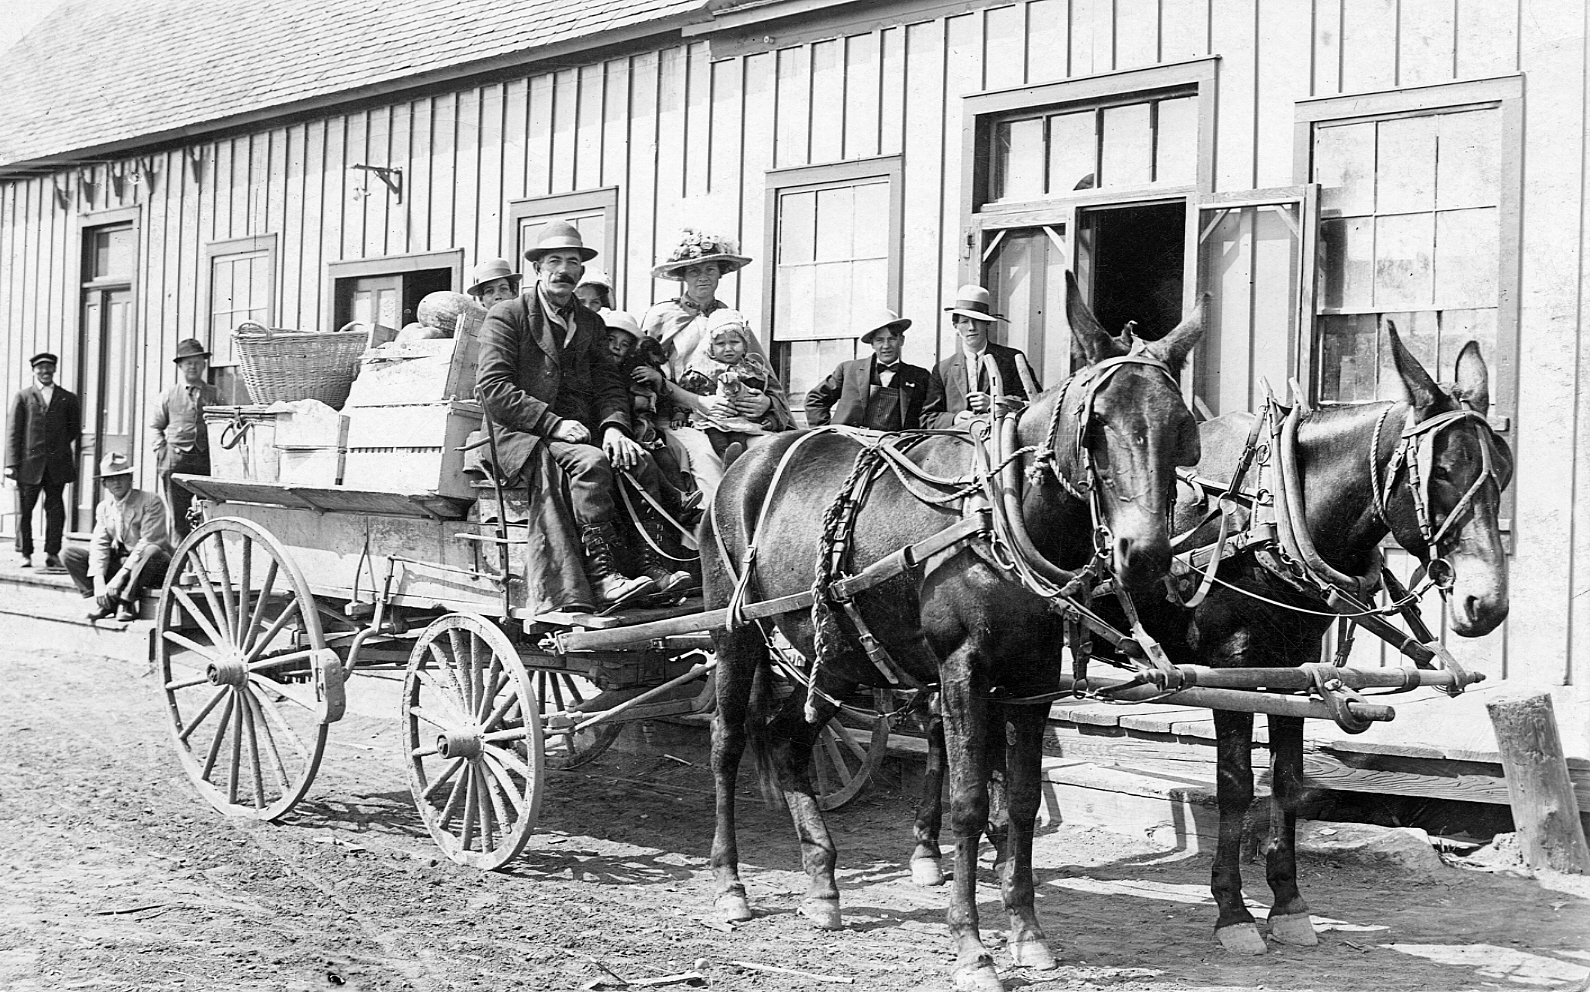 James Dodge family shortly after arriving in Lethbridge in front of the train station. 1913. Galt Archives 19841022000